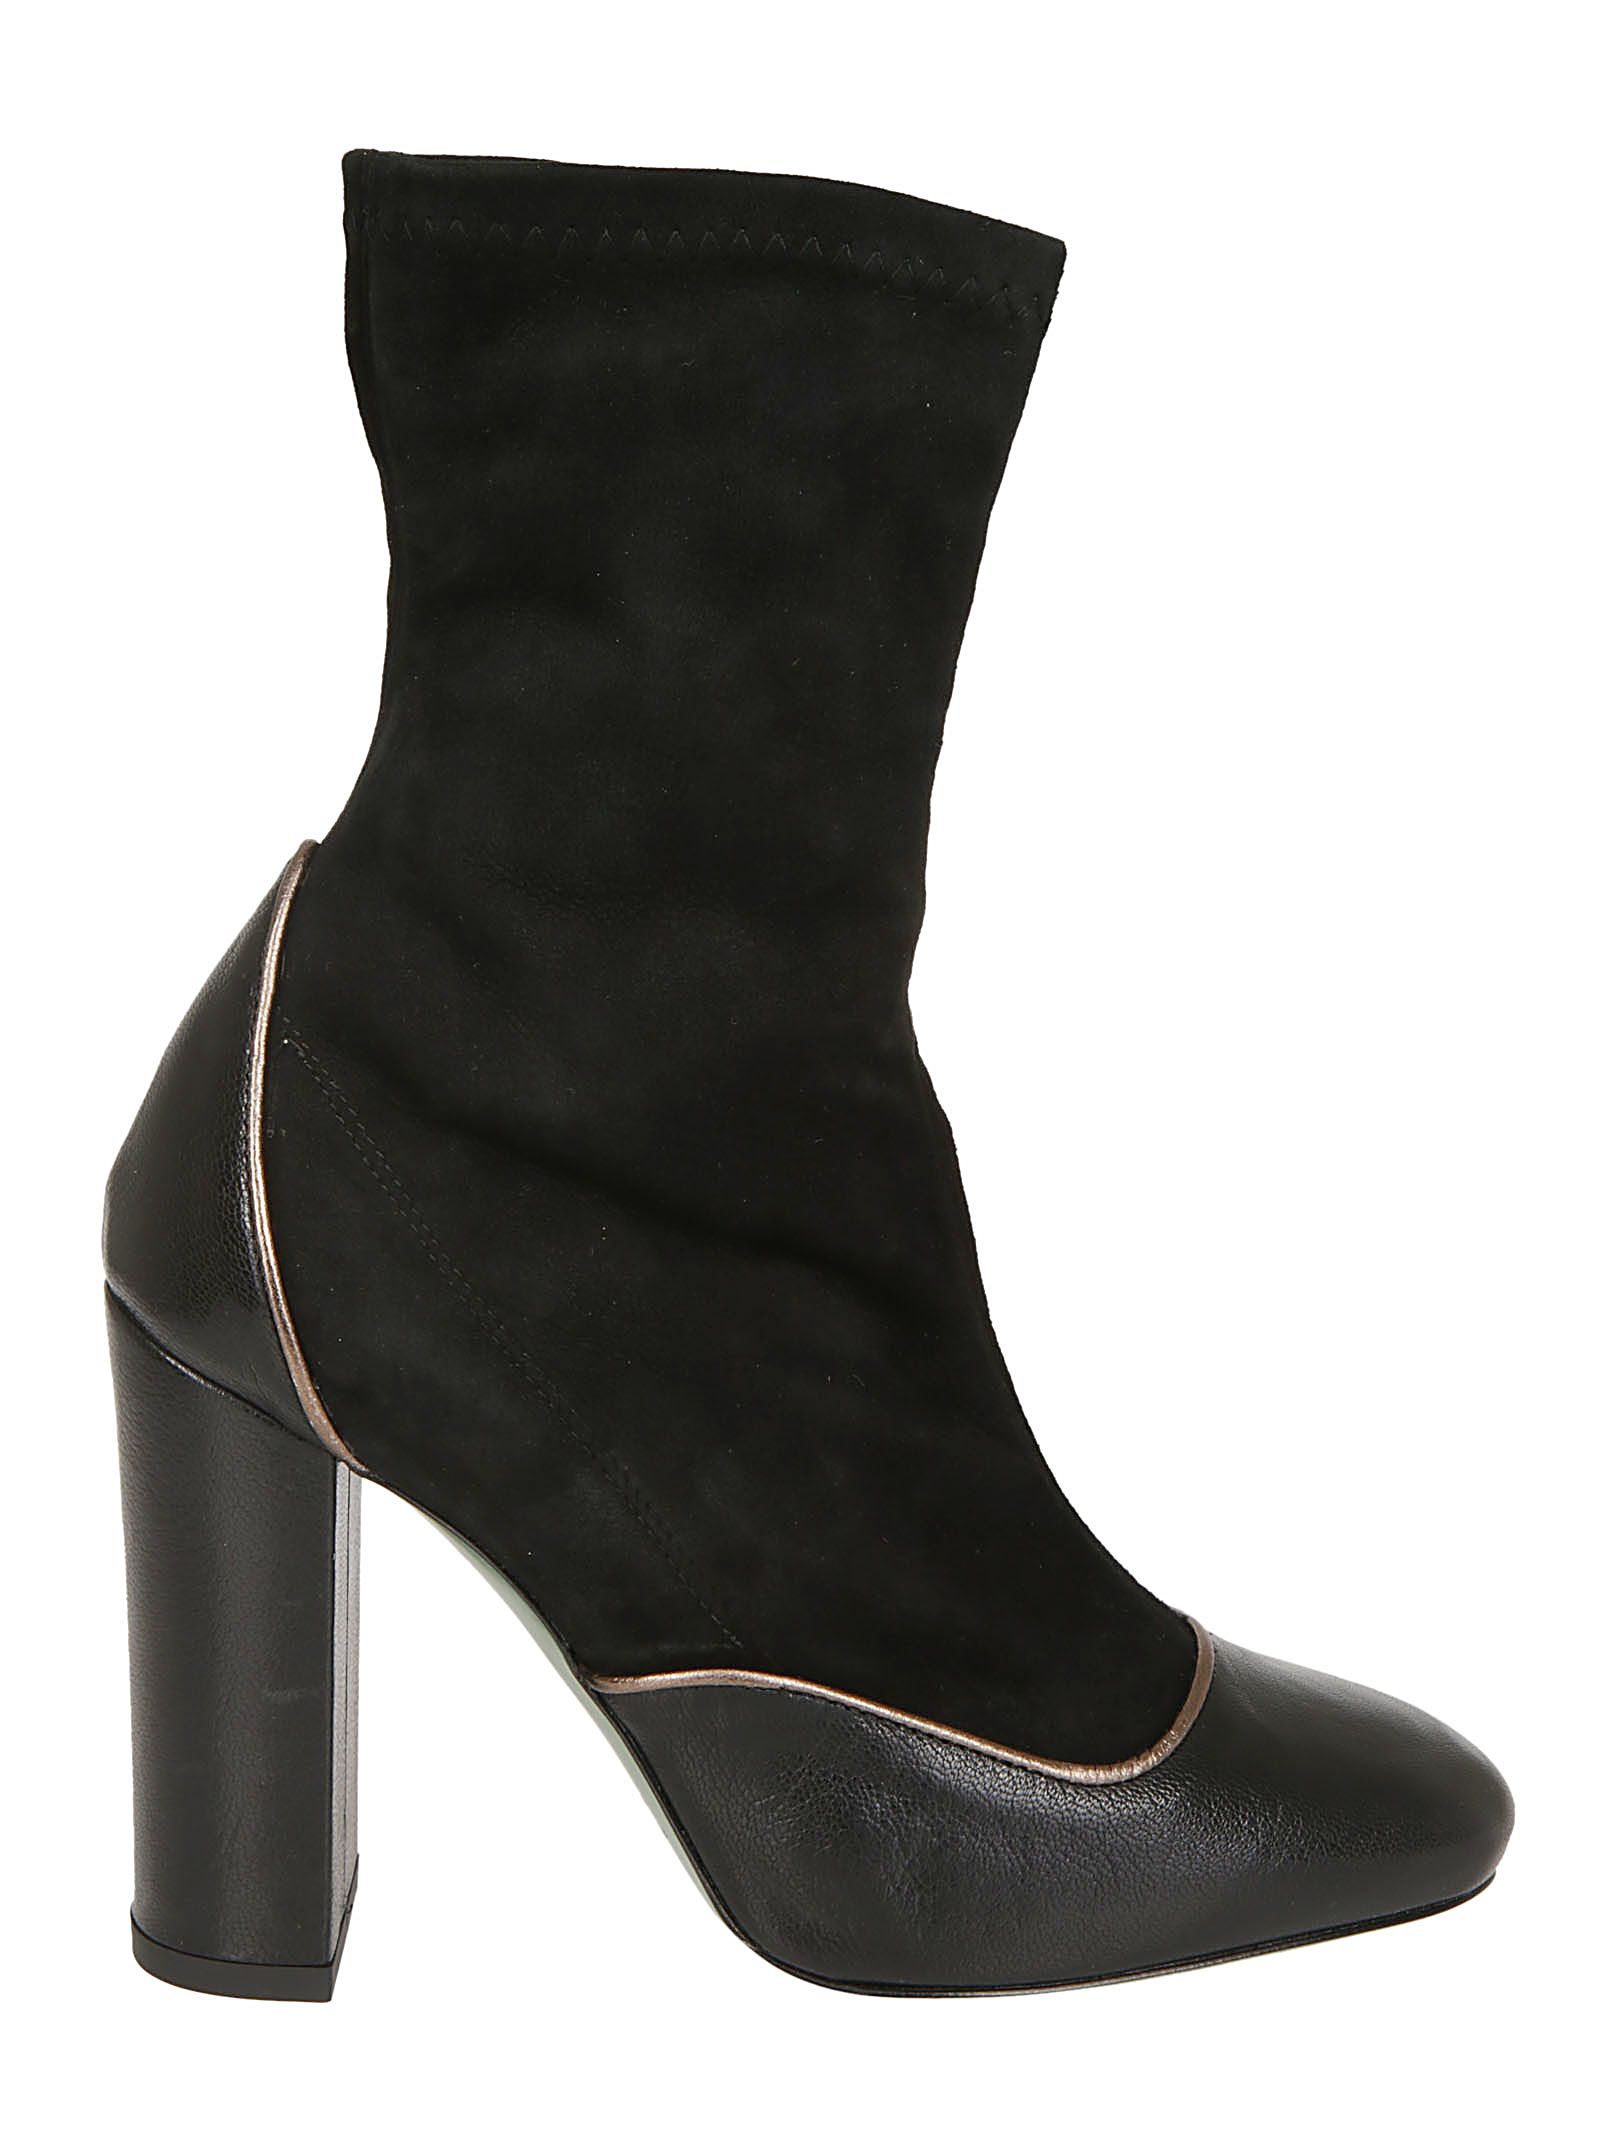 PAOLA D'ARCANO Paola D'Arcano High Heel Ankle Boots in Black